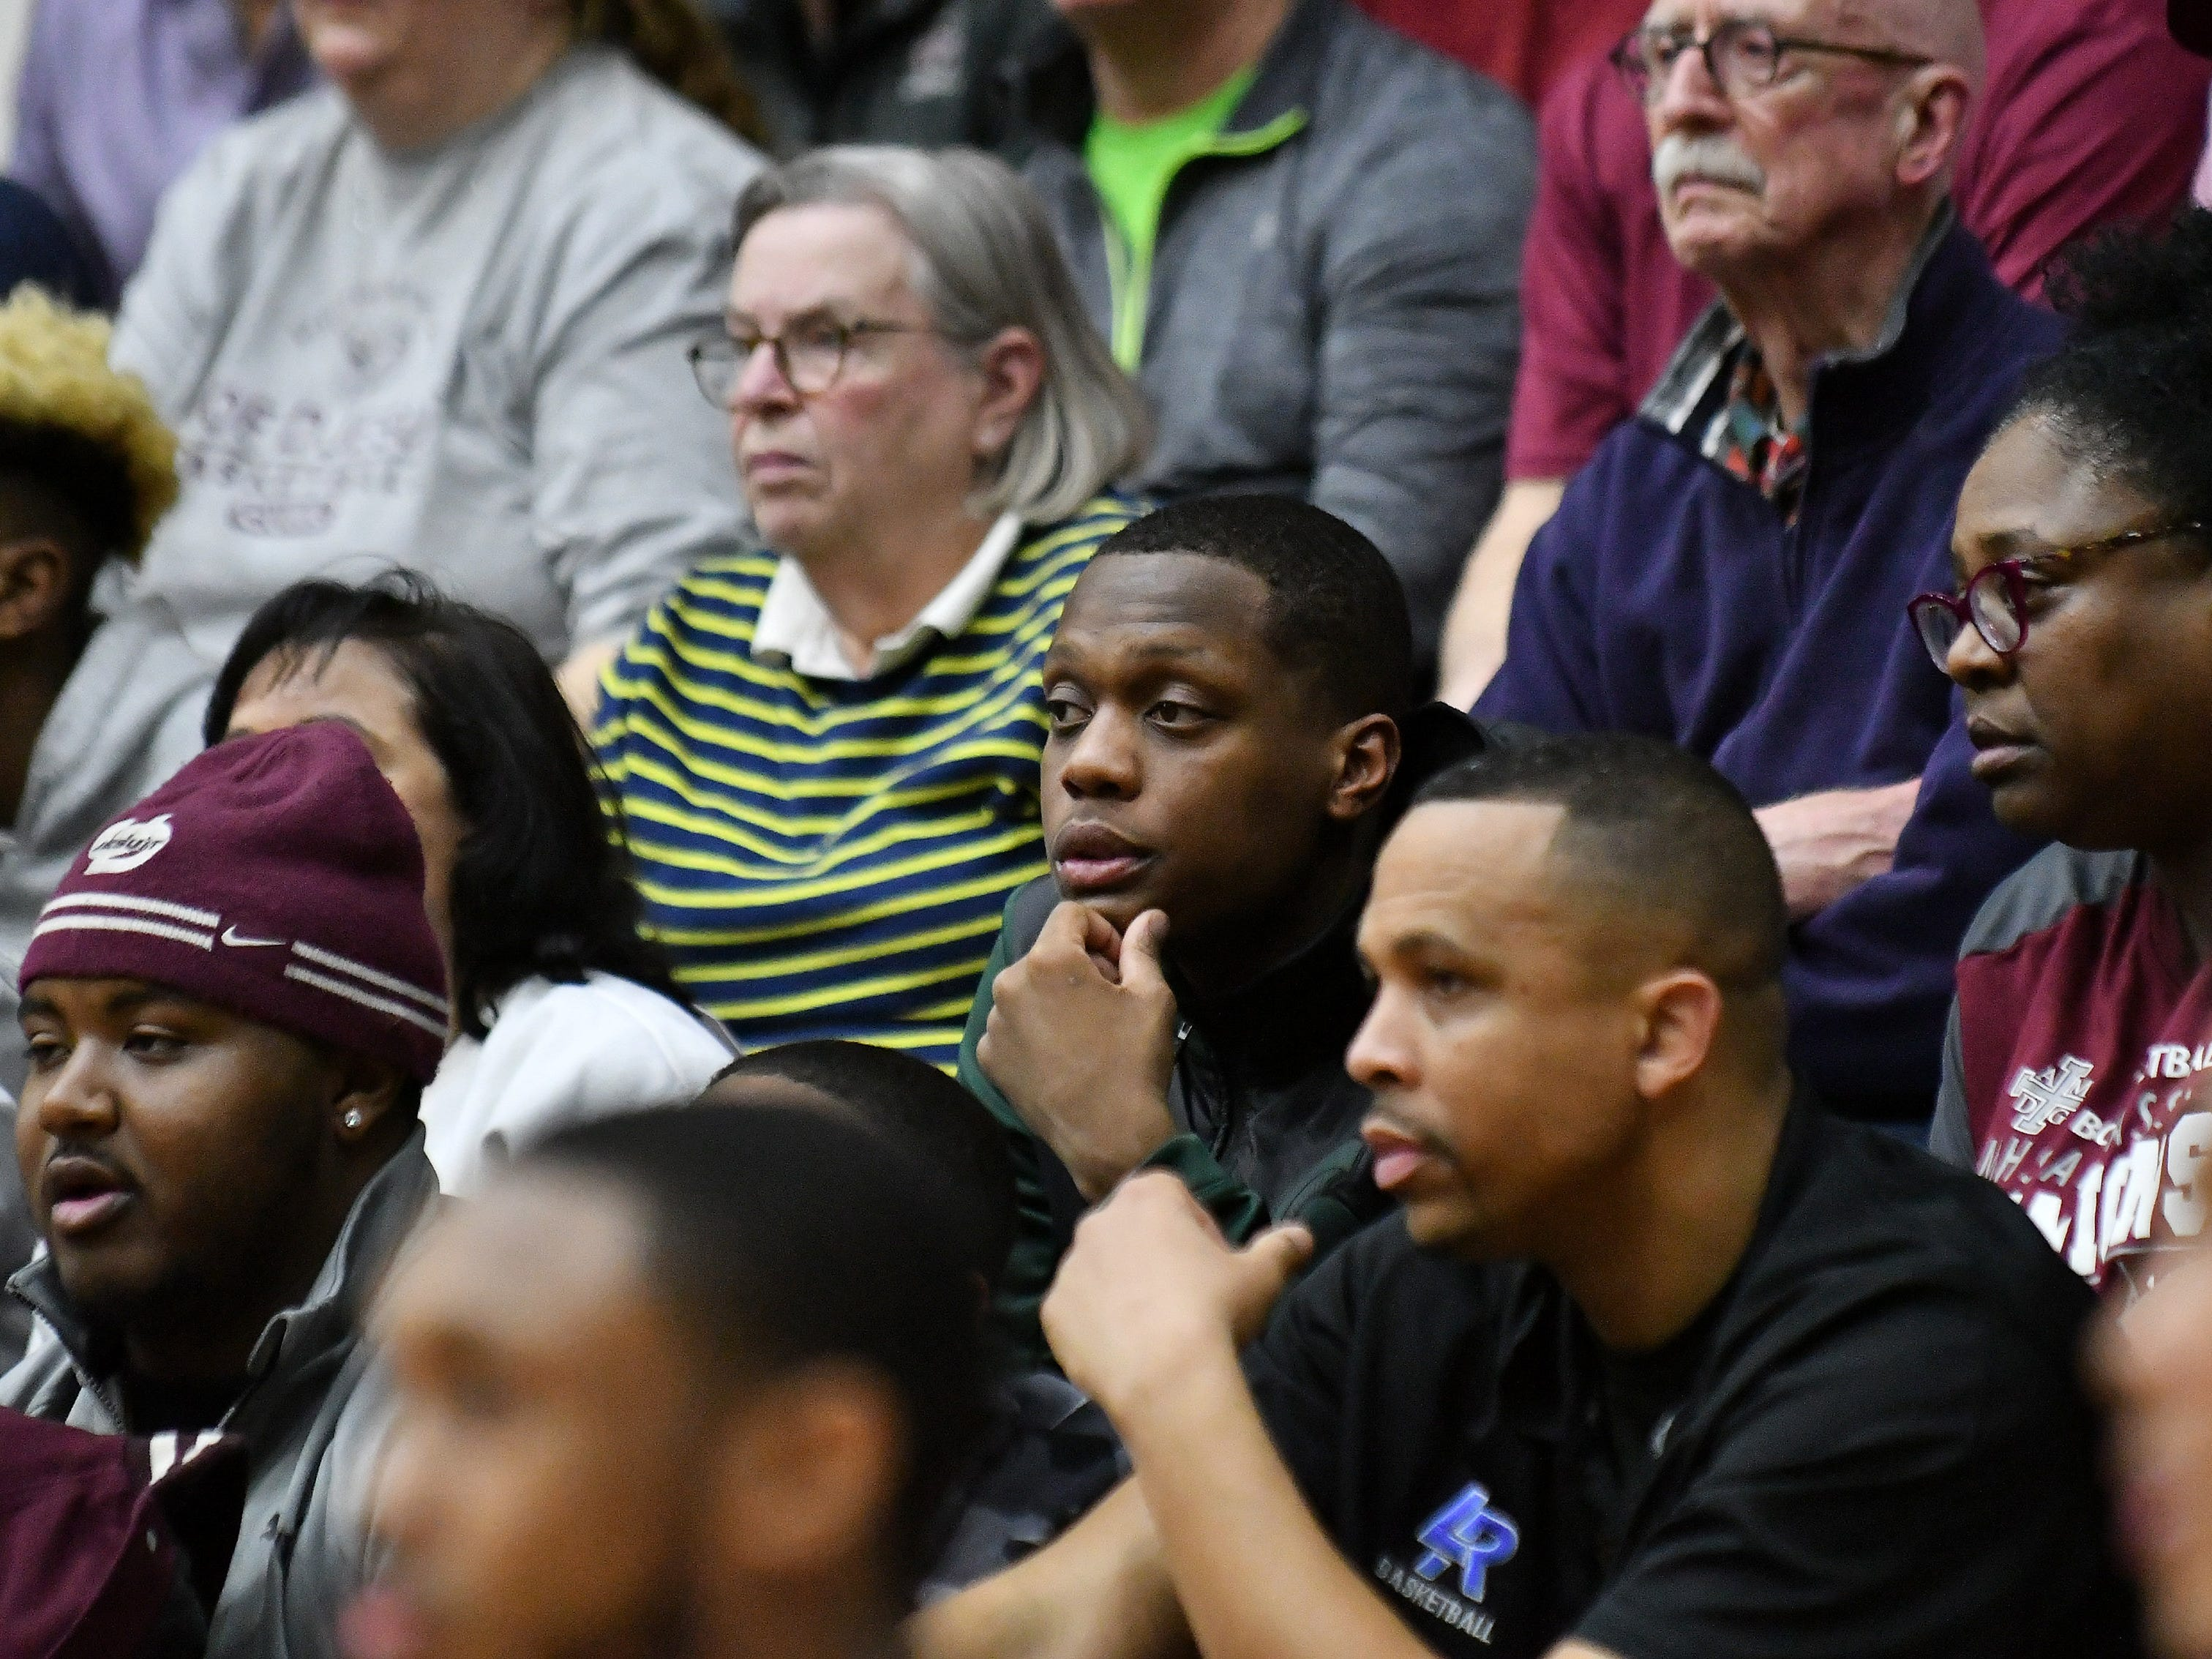 Michigan State guard Cassius Winston, center, was in the audience watching his brother, Khy Winston, play for U-D Jesuit in the second half.